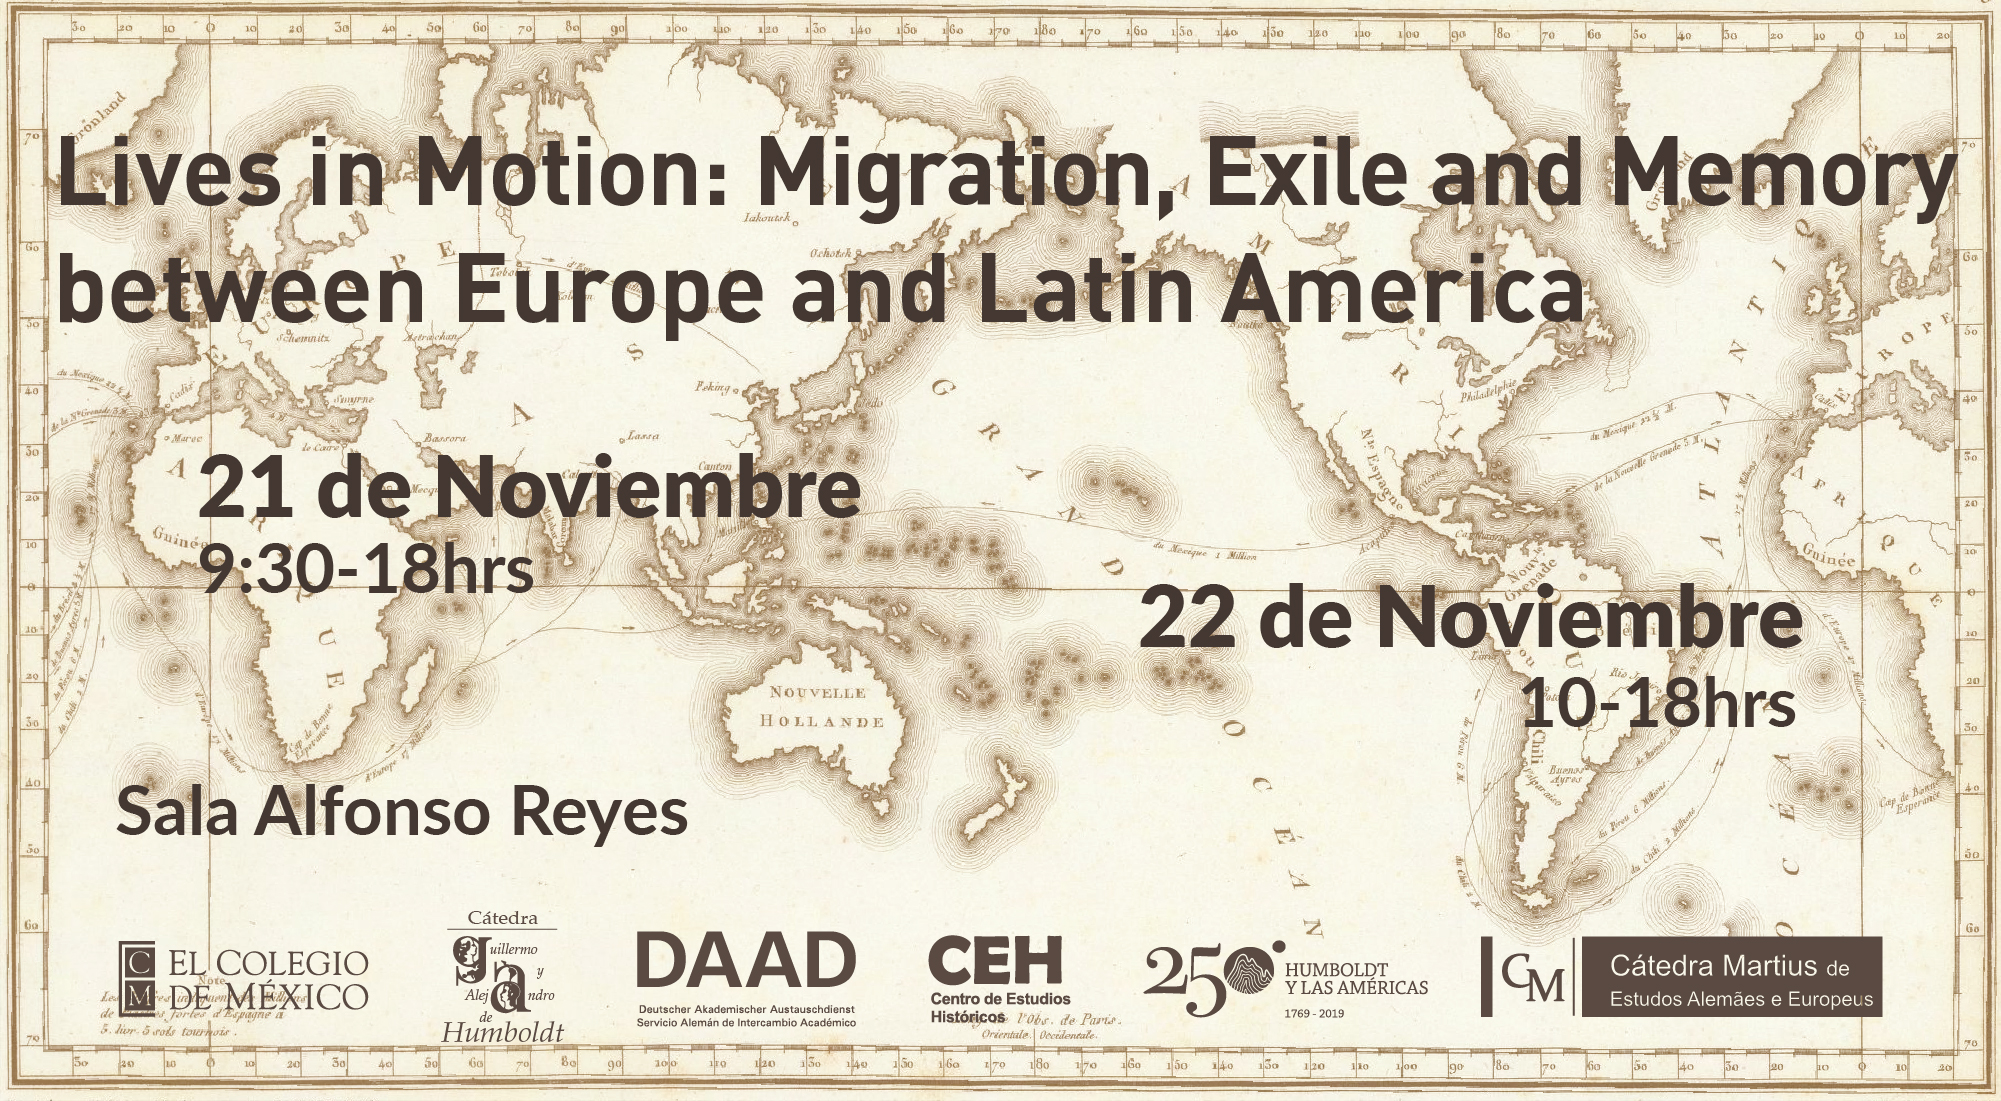 Conferencia internacional: Lives in motion: Migration, Exile, and Memory between Europe and Latin America